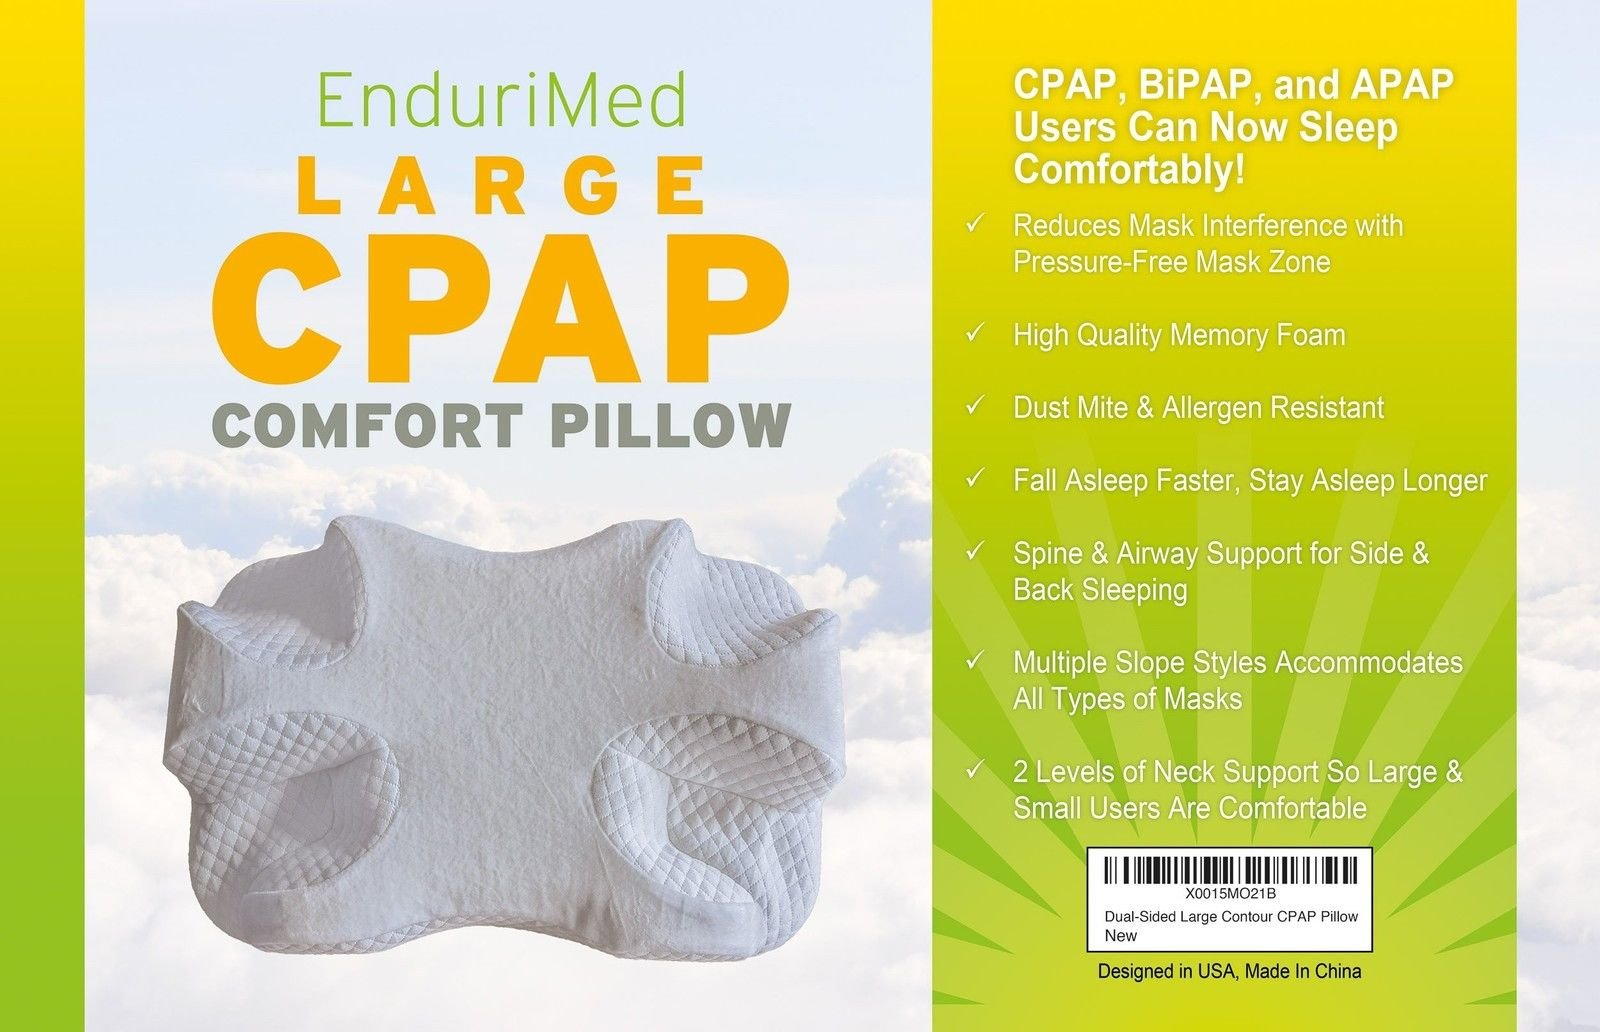 EnduriMed CPAP Pillow - Memory Foam Contour Design Reduces Face Mask Pressure & Air Leaks - 2 Head & Neck Rests For Max Comfort - CPAP, BiPAP & APAP User Supplies - For Stomach, Back, Side Sleepers